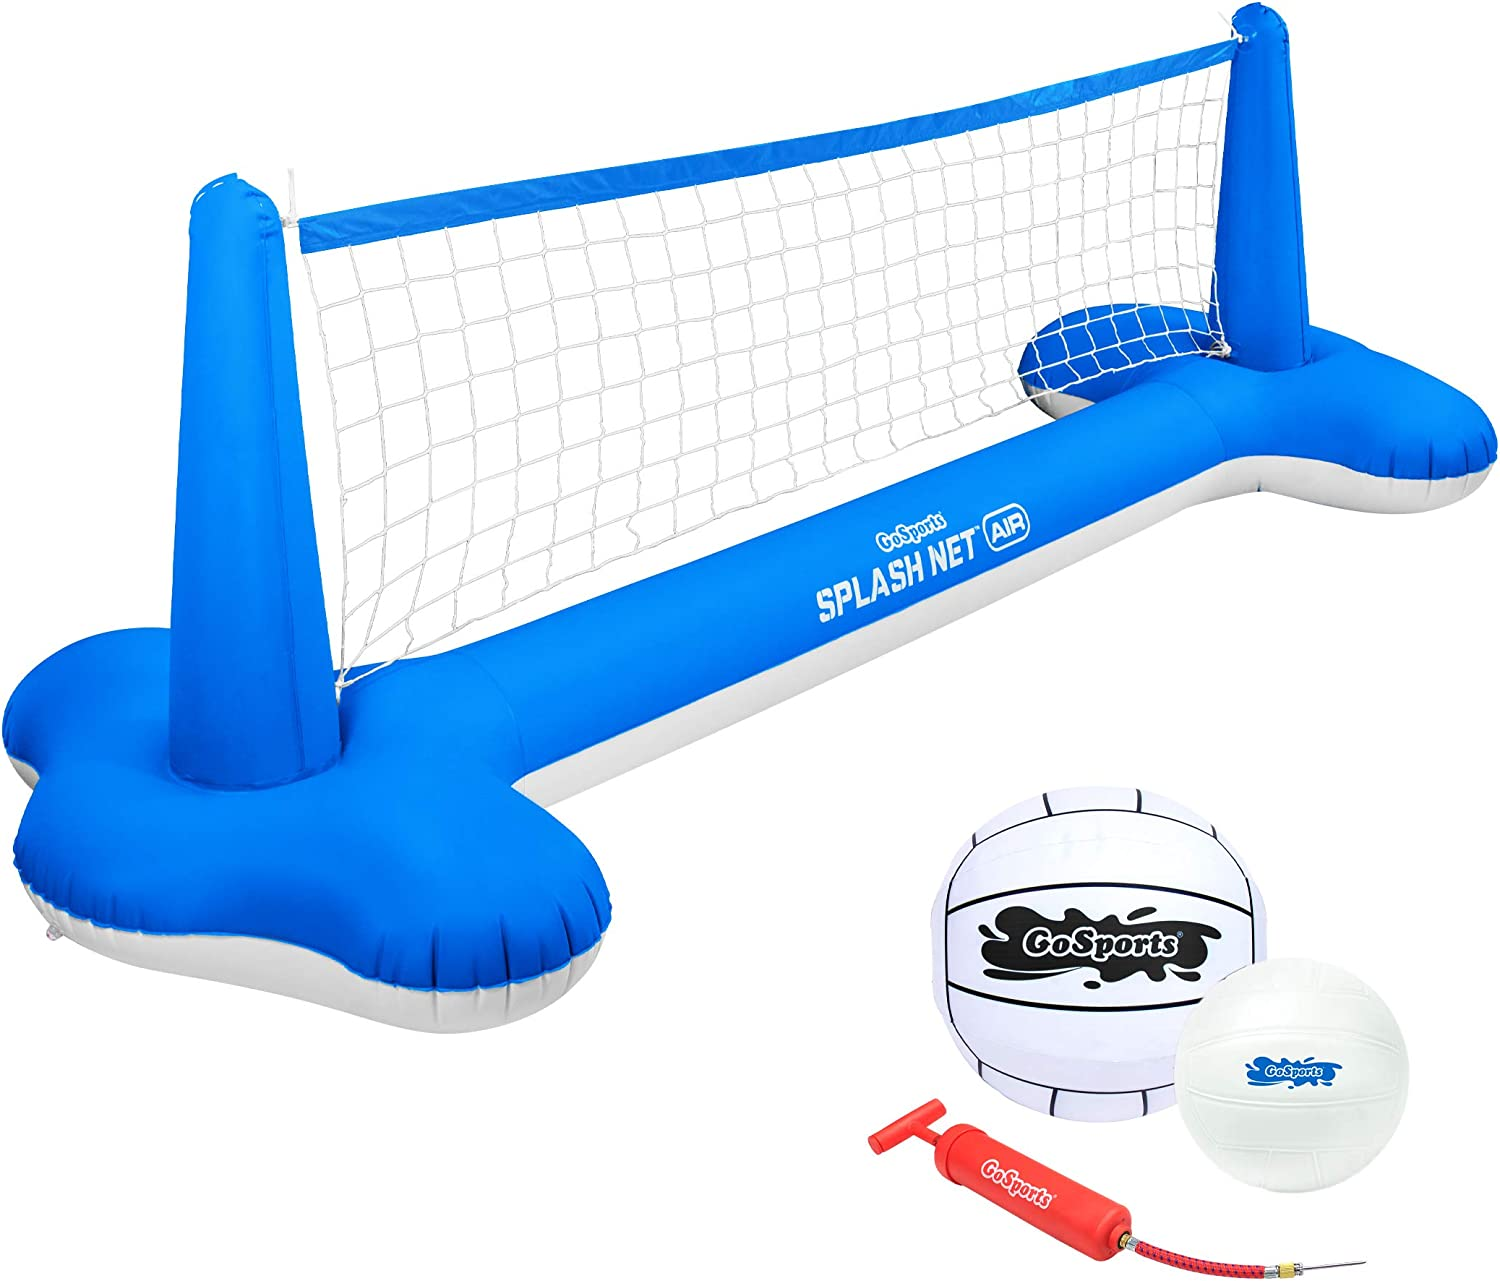 GoSports Splash 2021 new Net Super sale Air Inflatable Pool Game – Volleyball